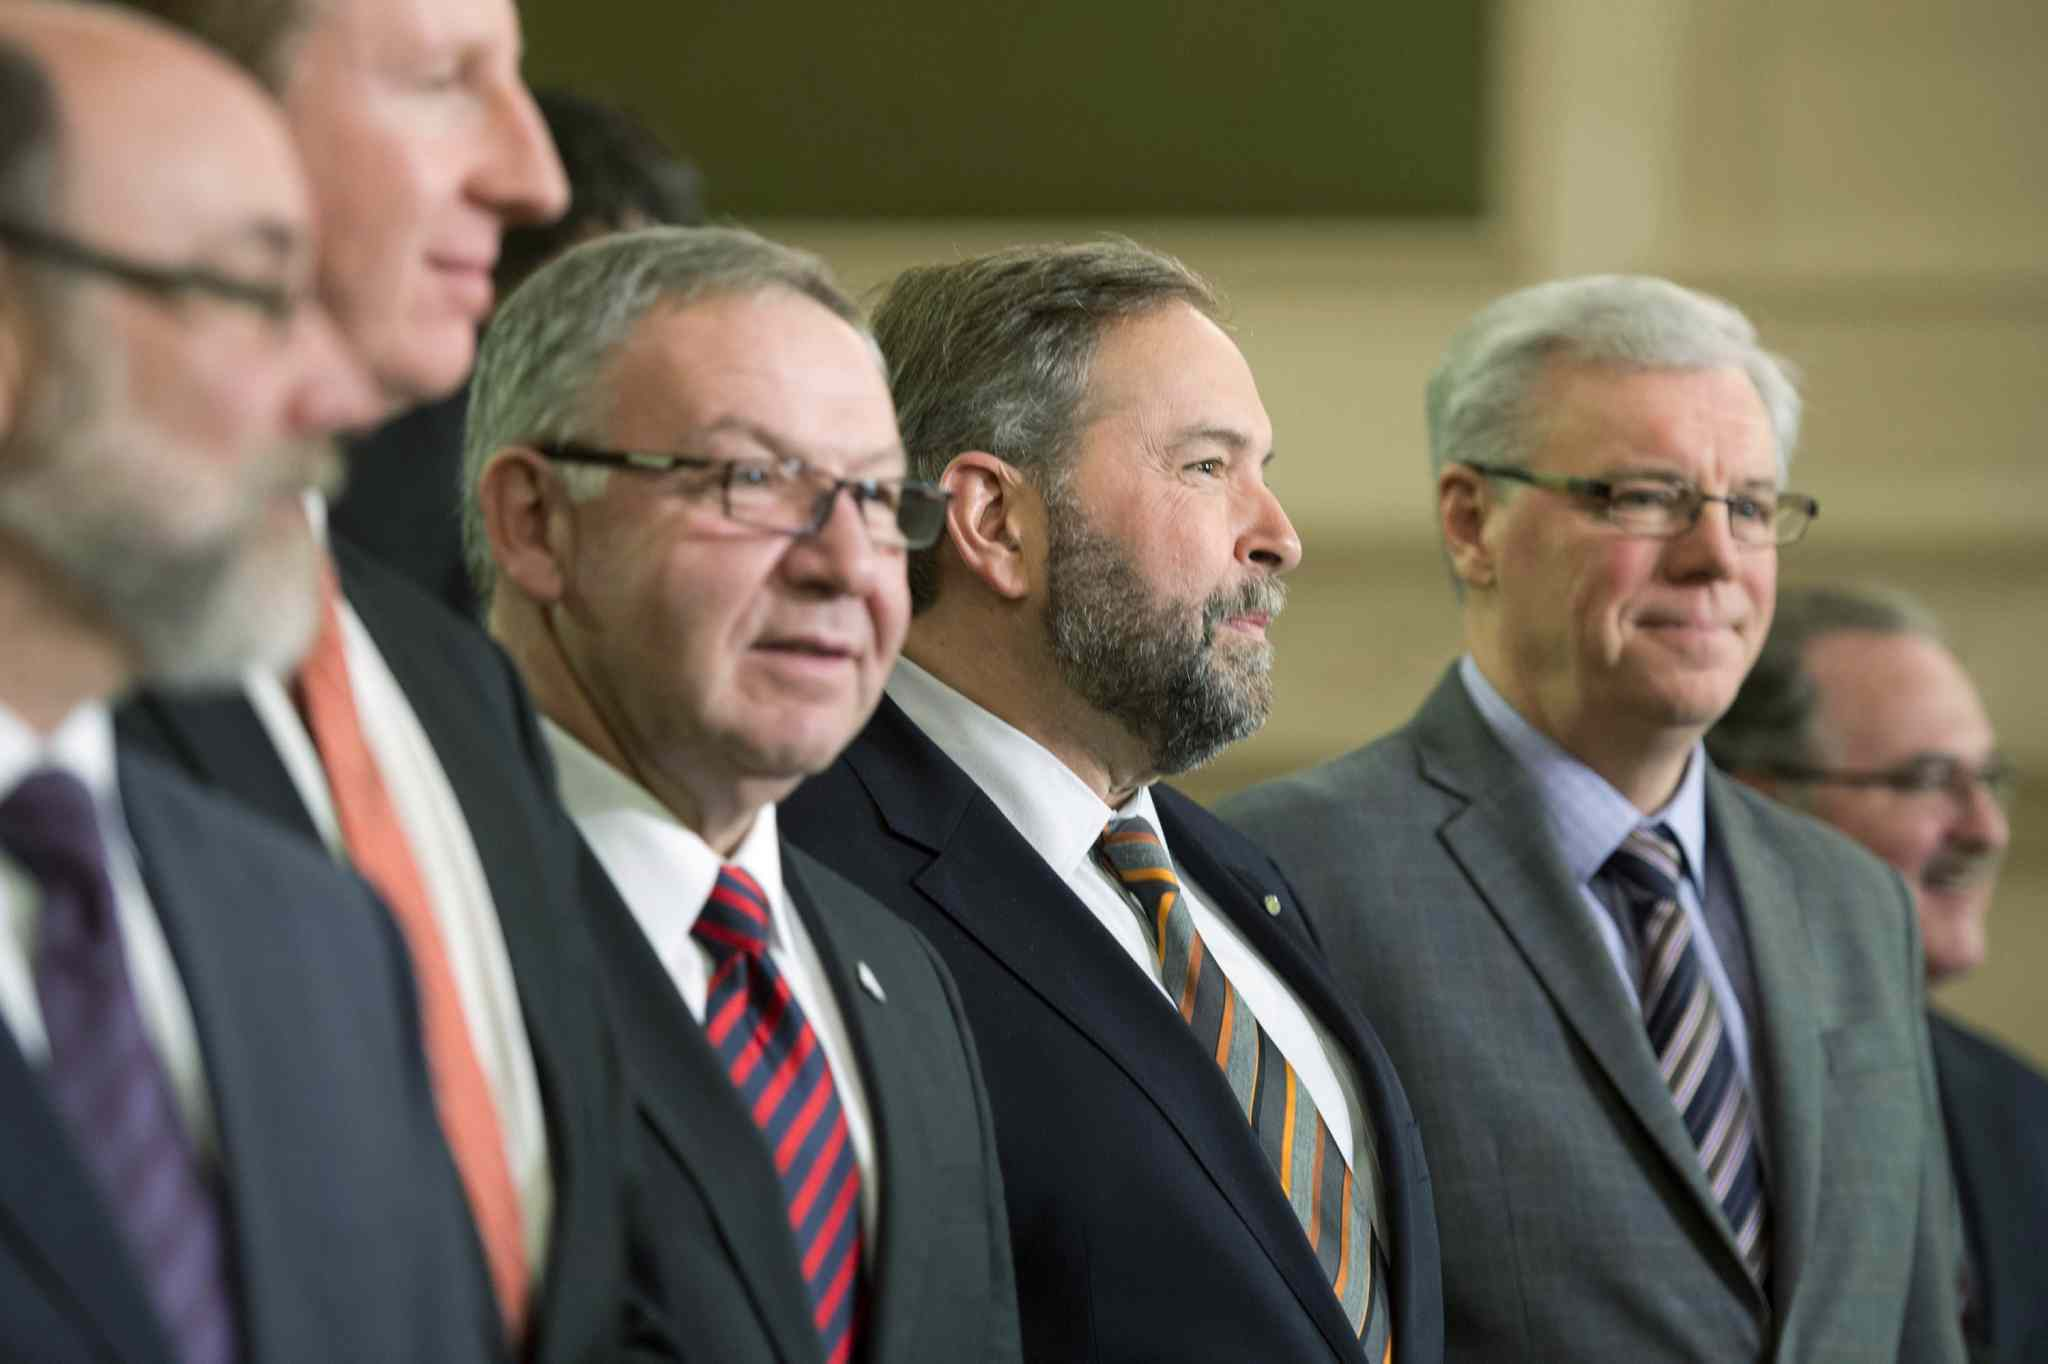 NDP Leader Tom Mulcair with Manitoba Premier Greg Selinger in 2013.  The leaders did not appear together at a recent rally in Winnipeg.